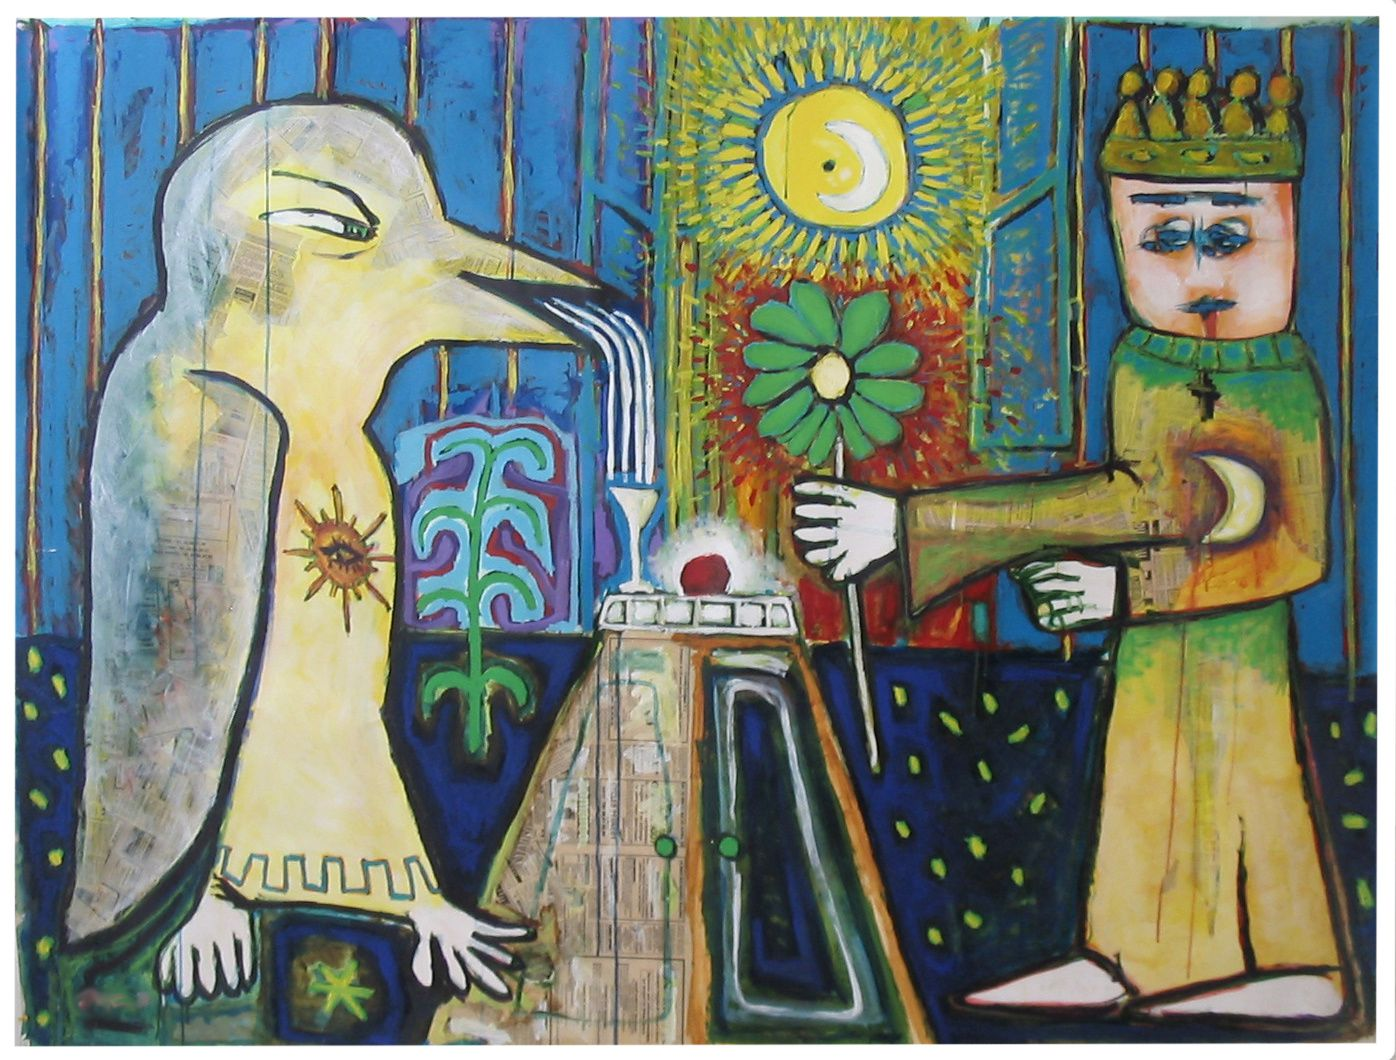 3 - LA VISITE AU PEDAUQUE -Technique mixte - 150 x 198  cm.